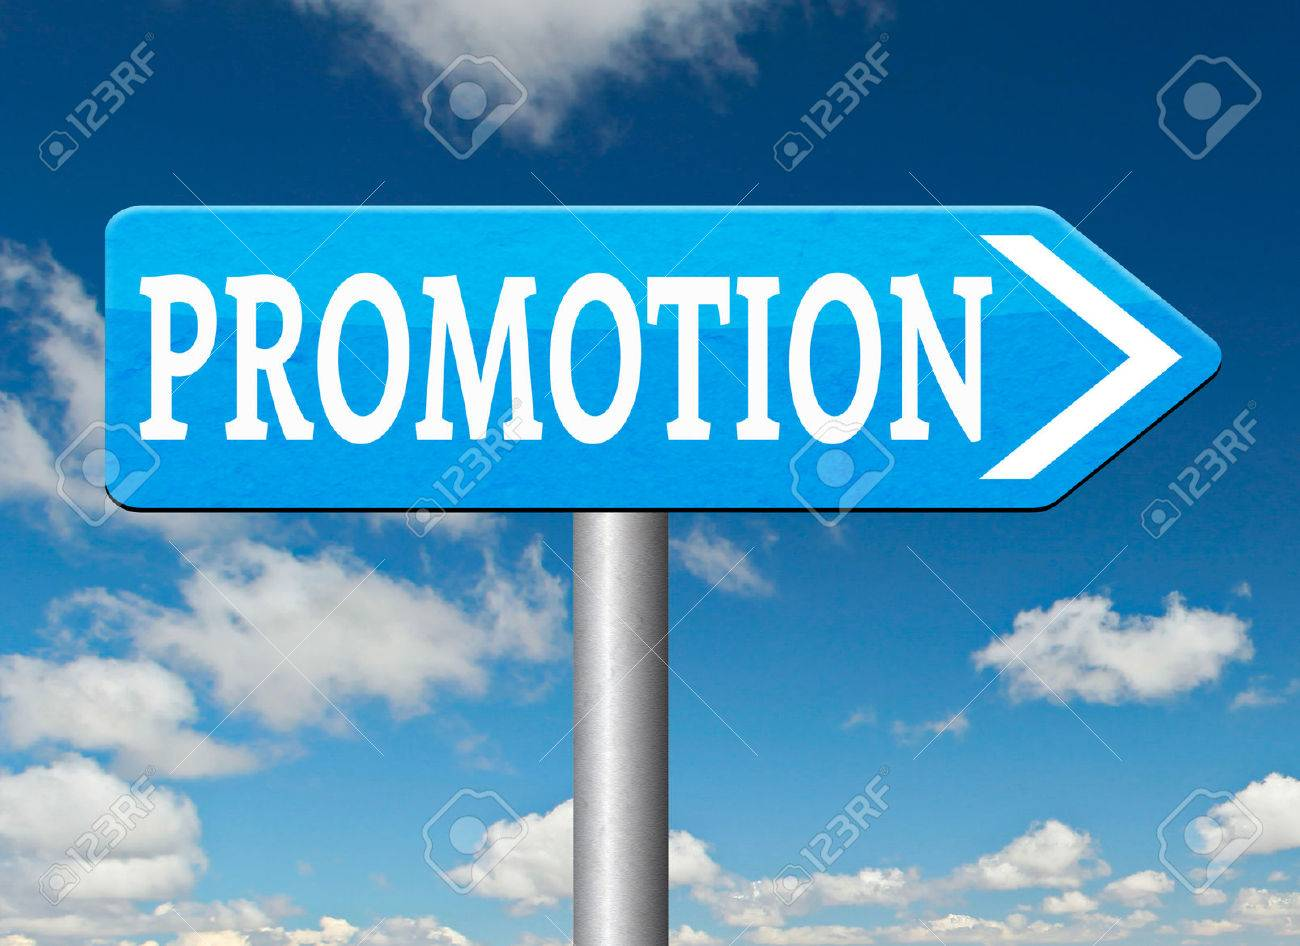 job promotion or product summer or winter s promotion stock stock photo job promotion or product summer or winter s promotion